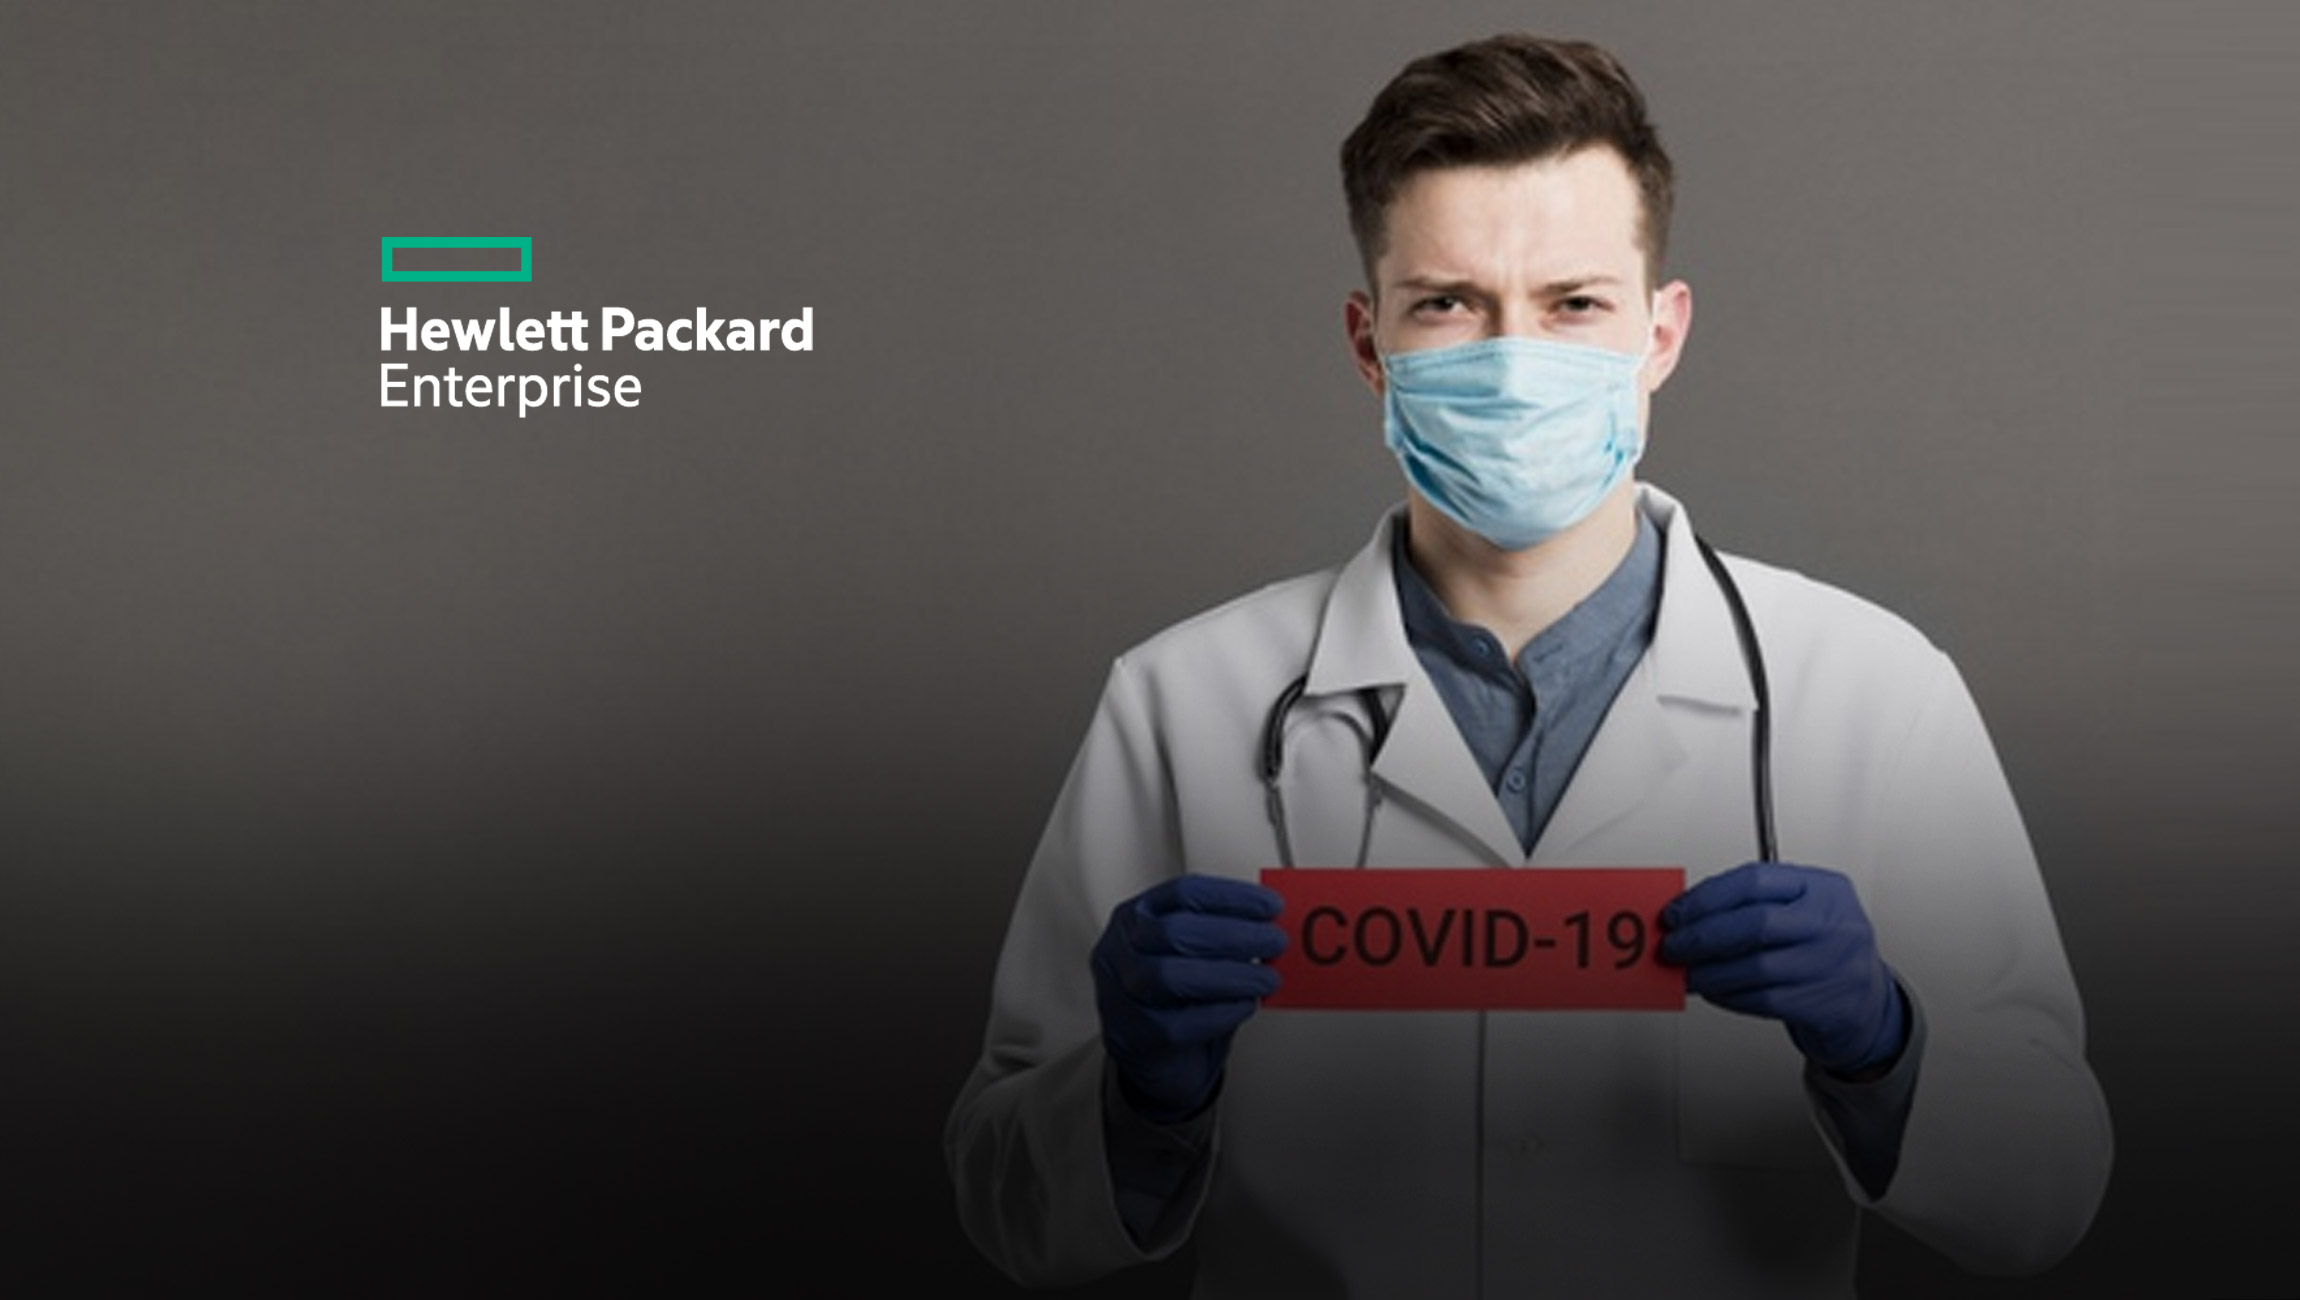 HPE Rolls Out Extensive Financial Relief and Support Initiatives for Partners Impacted by COVID-19